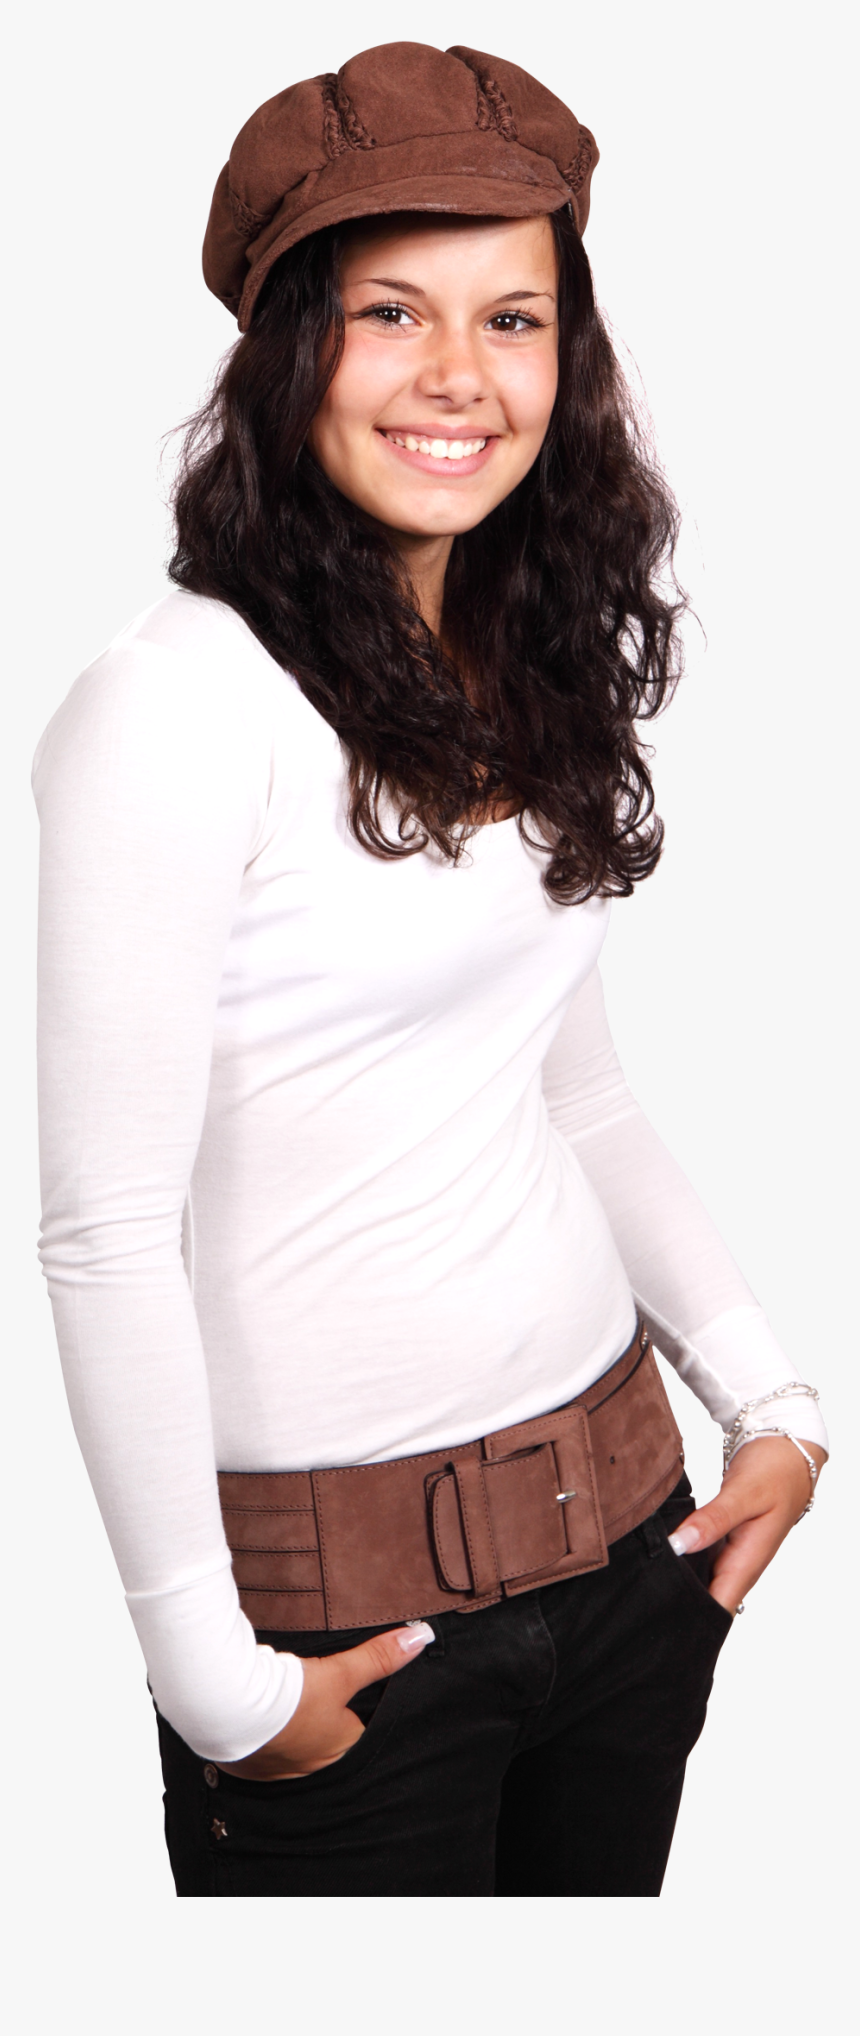 Young Smiling Woman Wearing A White T Shirt And Brown - Female Model Wearing T Shirt Png, Transparent Png, Free Download